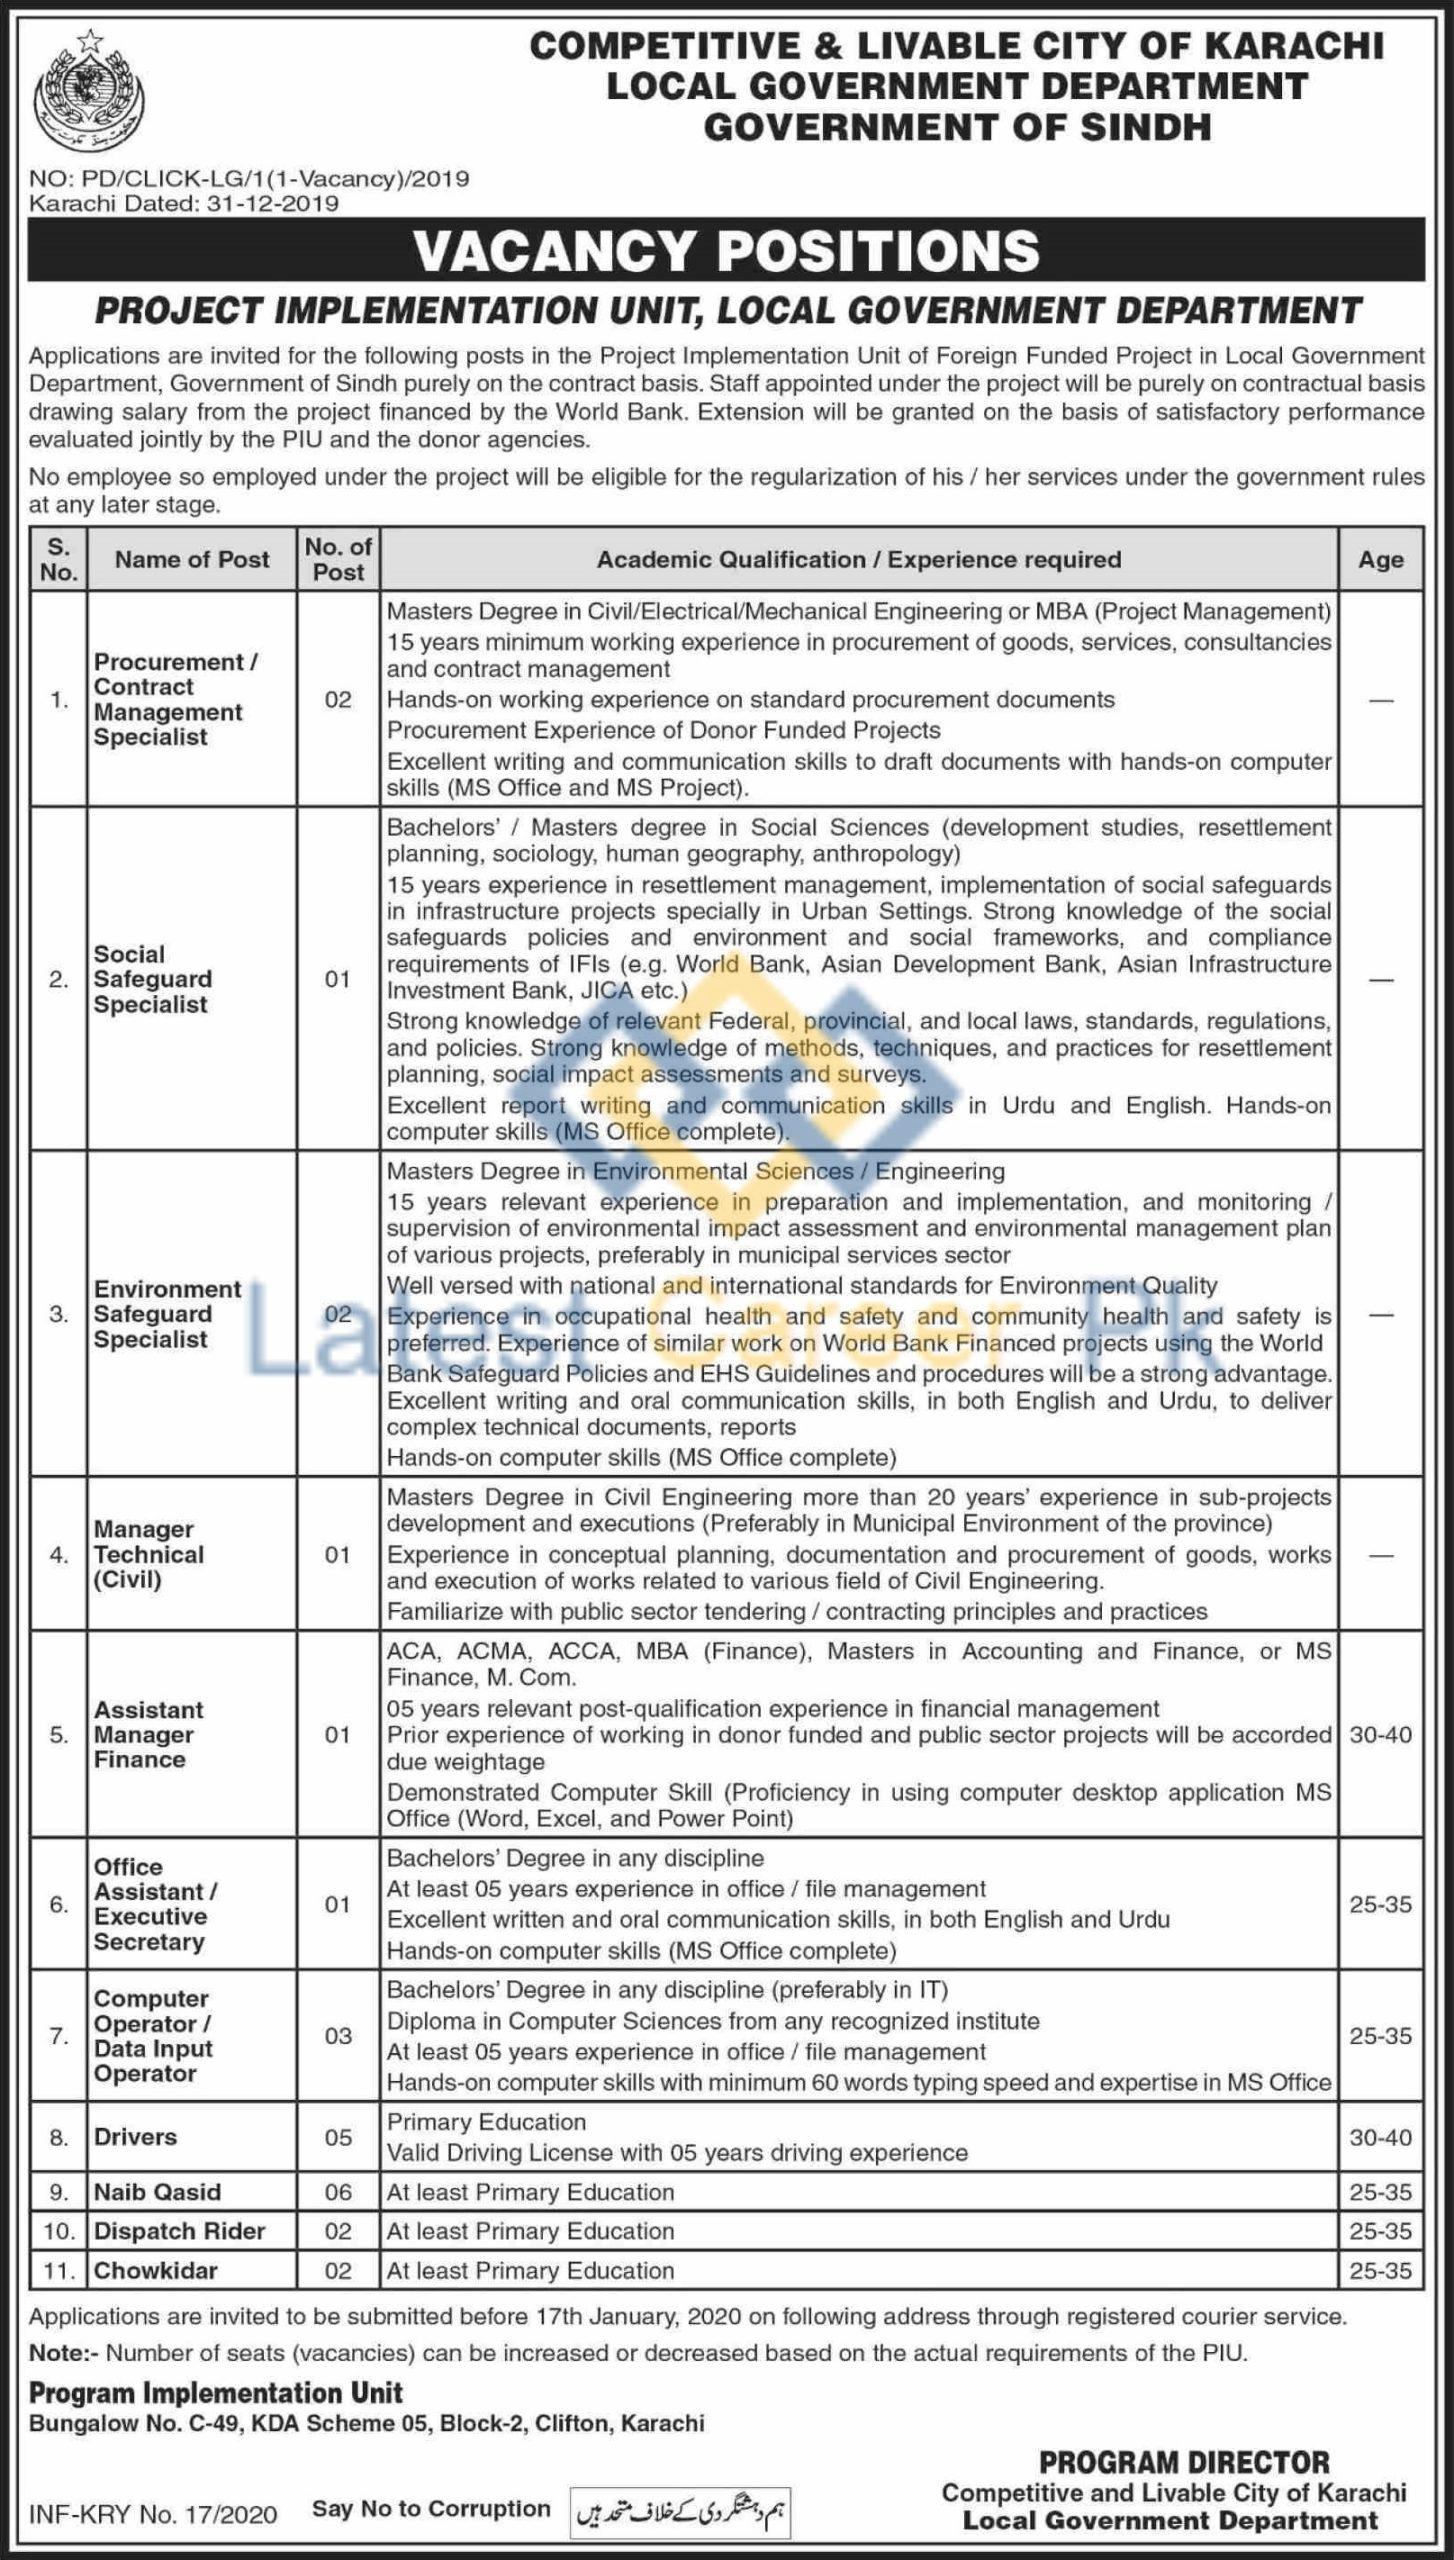 Govt-of-Sindh-Local-Government-Department-Karachi-Jobs-03-Jan-2020